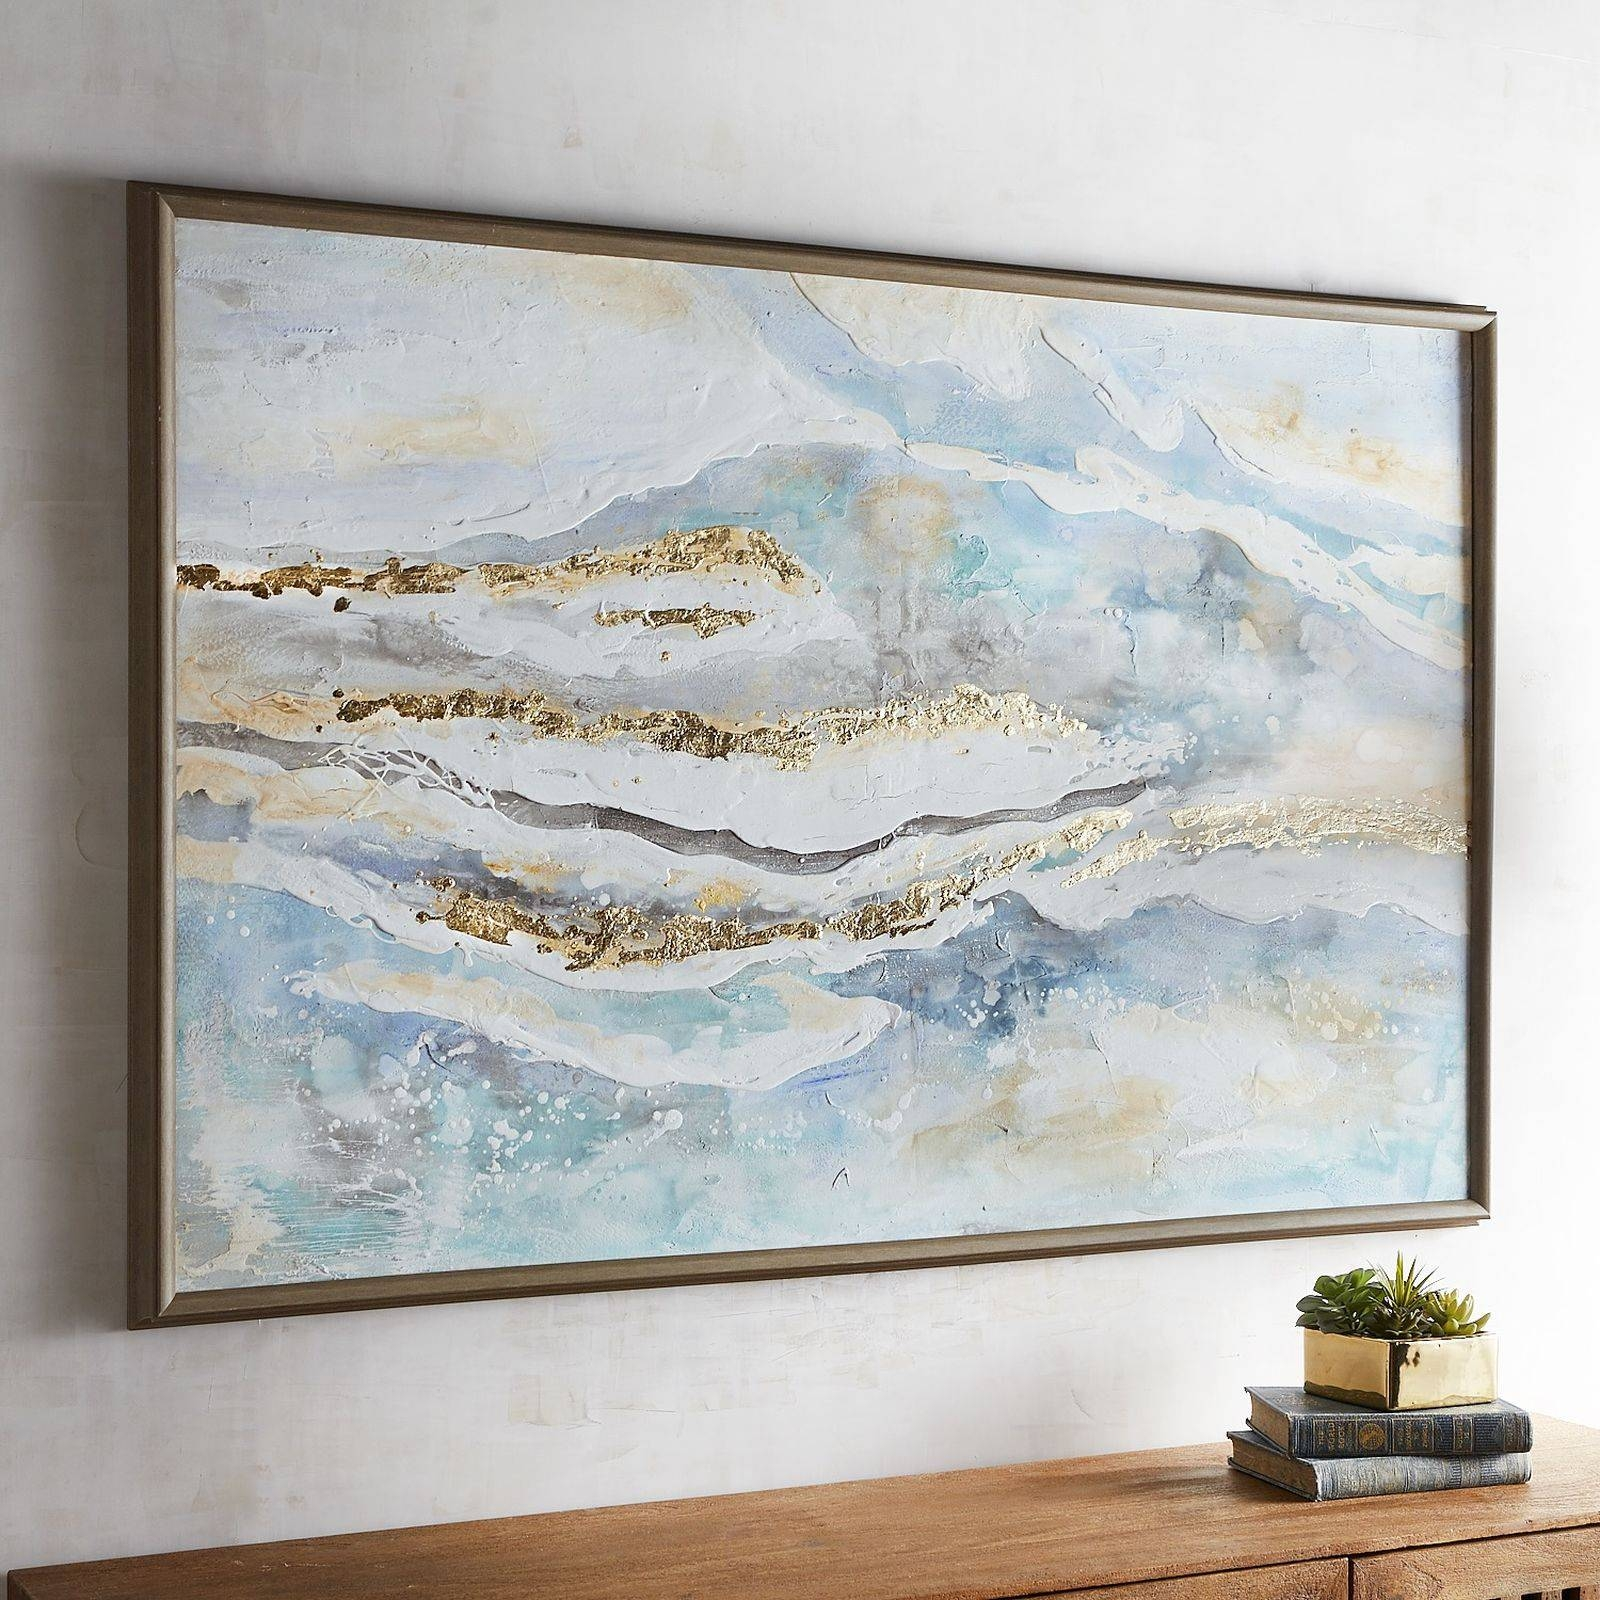 Wall Art: Marvellous Framed Coastal Art Nautical Metal Wall Art Intended For Most Current Coastal Wall Art Canvas (View 20 of 20)